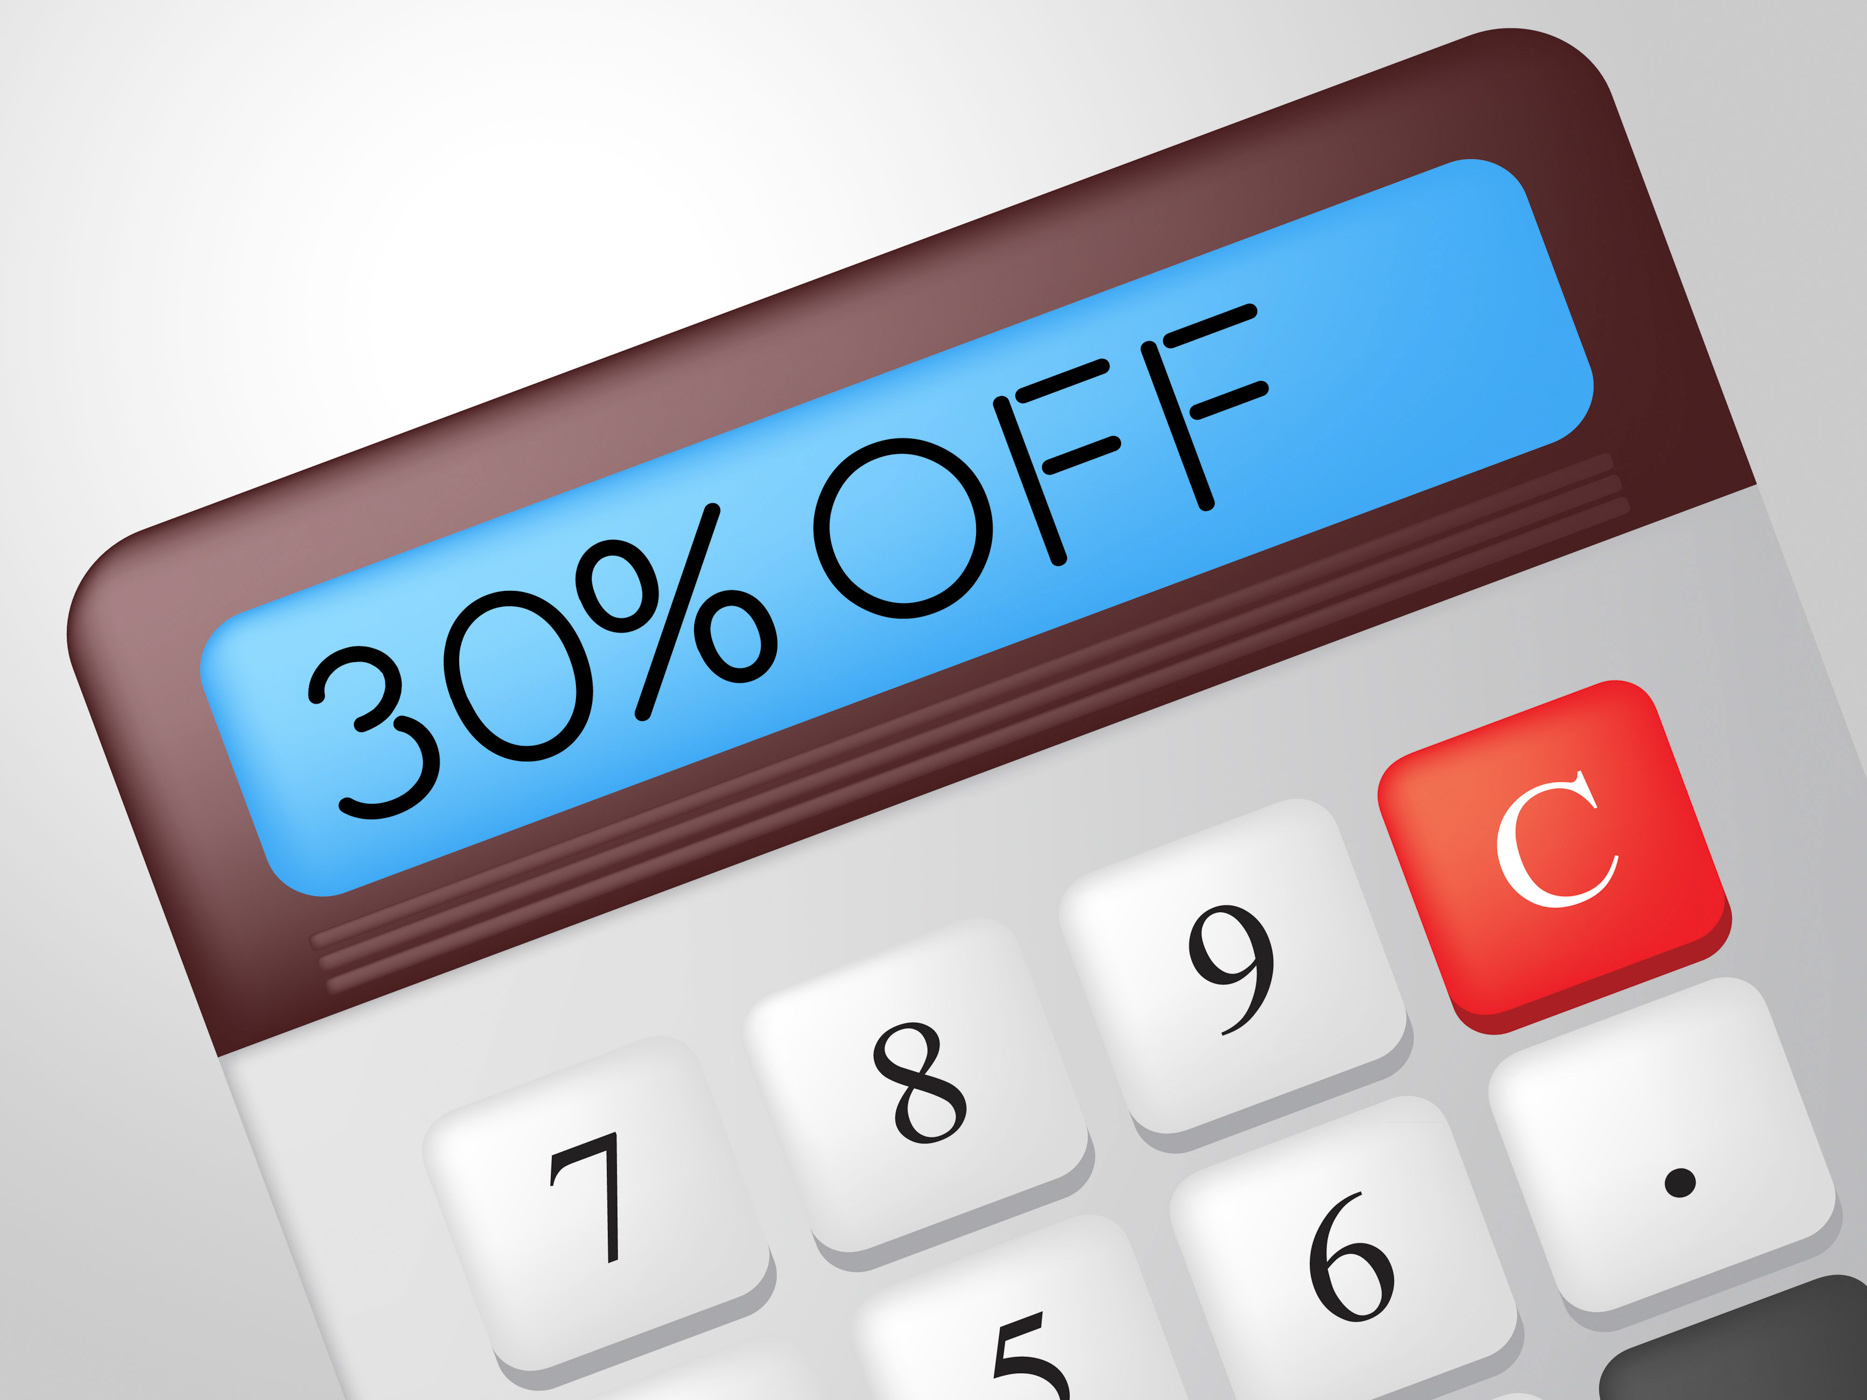 Thirty percent off means discounts clearance and calculate photo